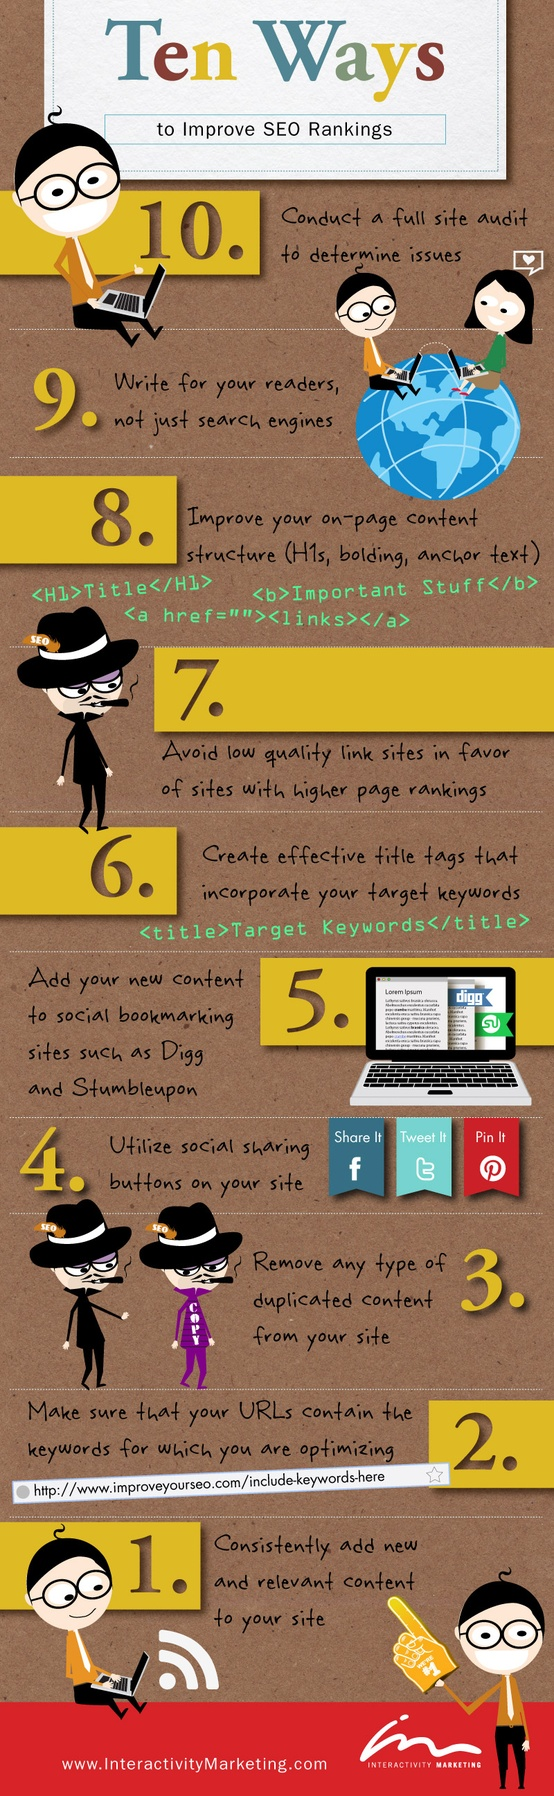 10 Ways to improve your SEO rankings